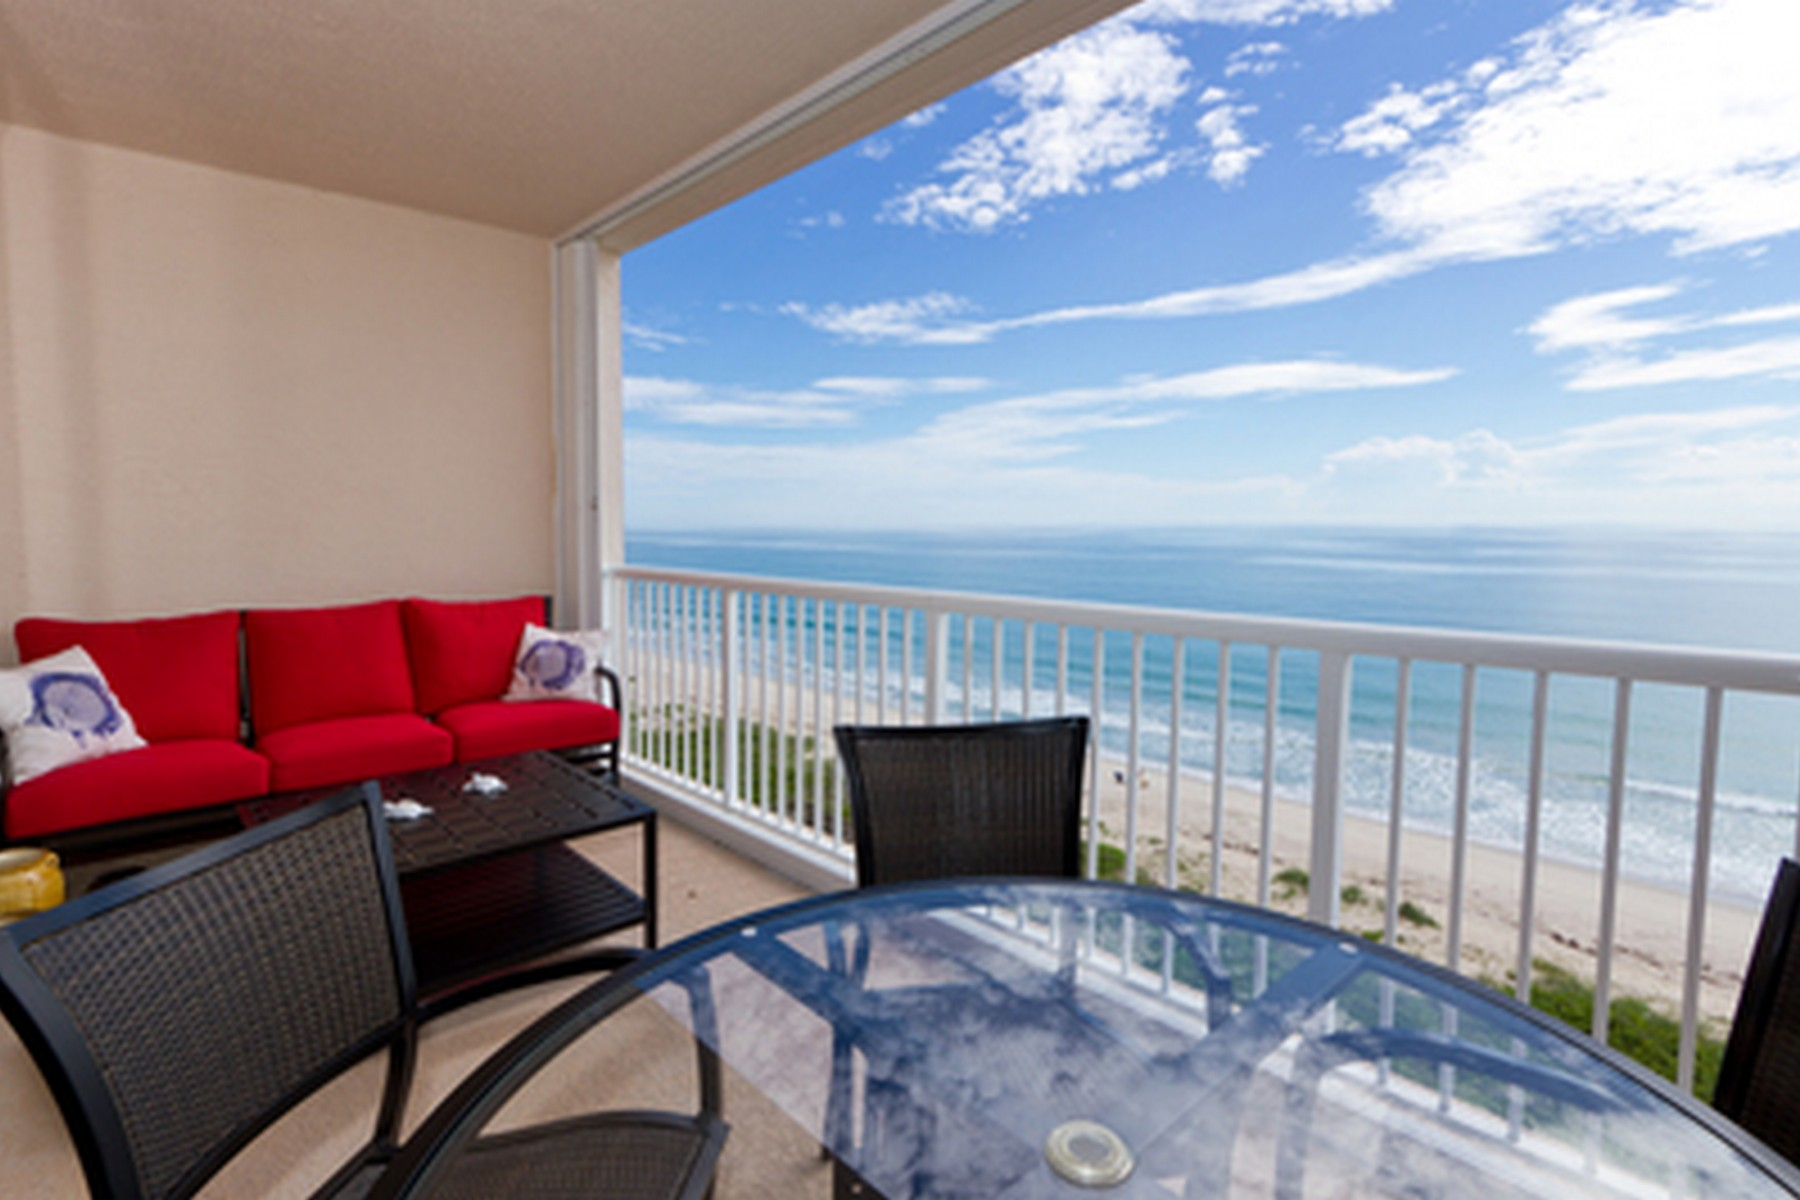 The Sky Touches the Sea of this Ninth Floor Oceanfront Condo! 4160 N Highway A1A #903A Hutchinson Island, Florida 34949 Usa